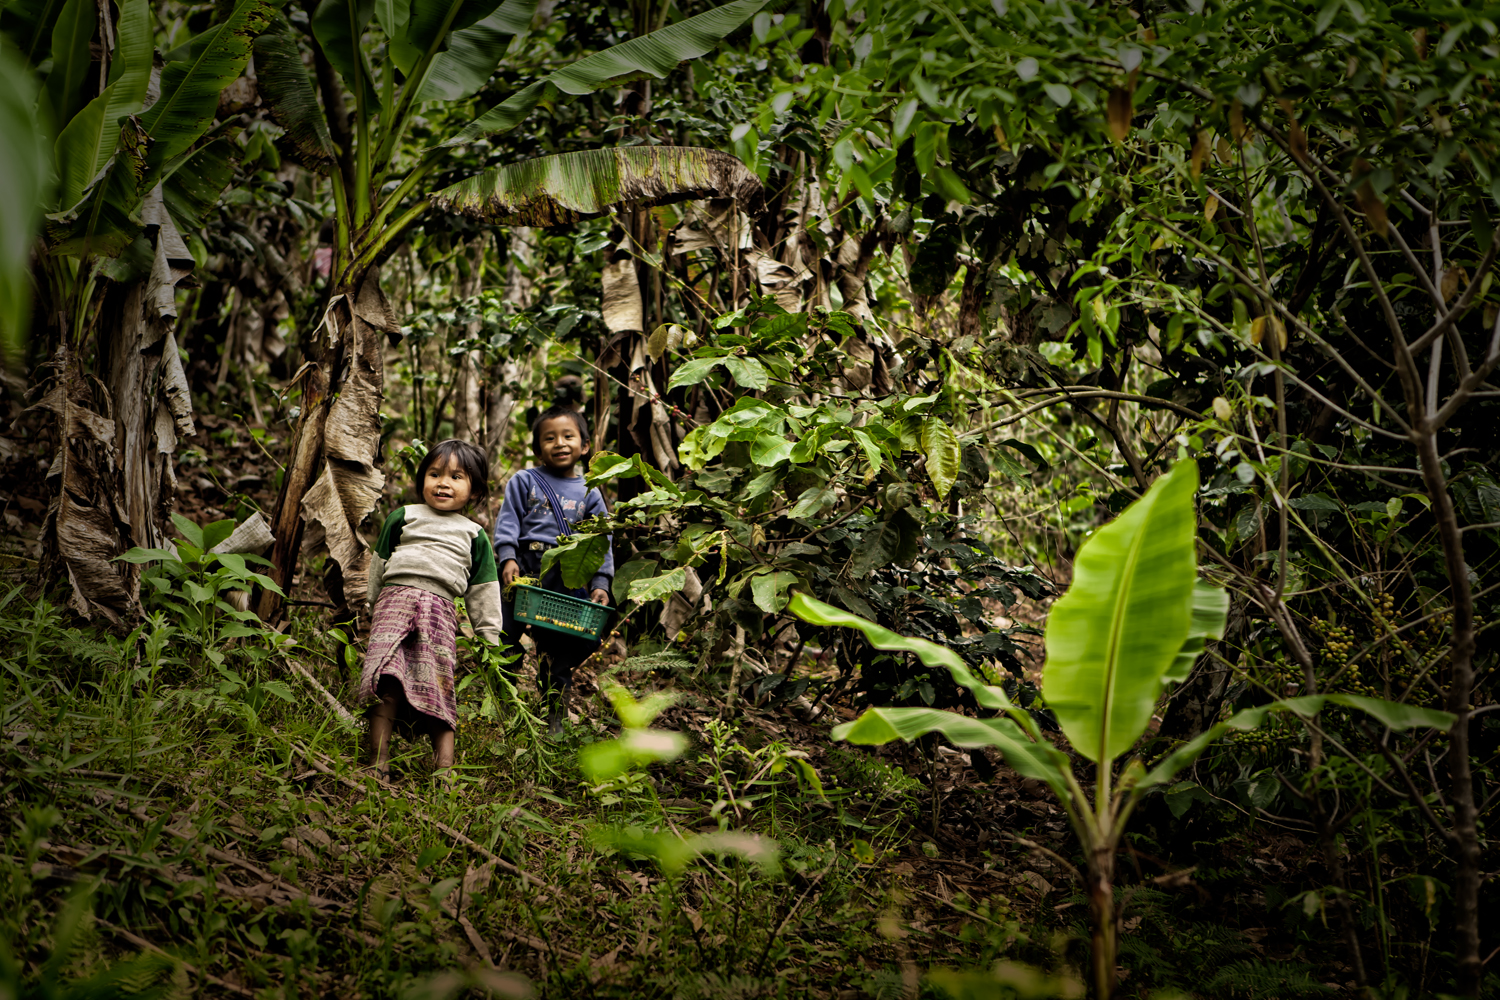 Title: COFFEE BABIES  Location: Santa Avelina, Guatemala  Date: March 2013